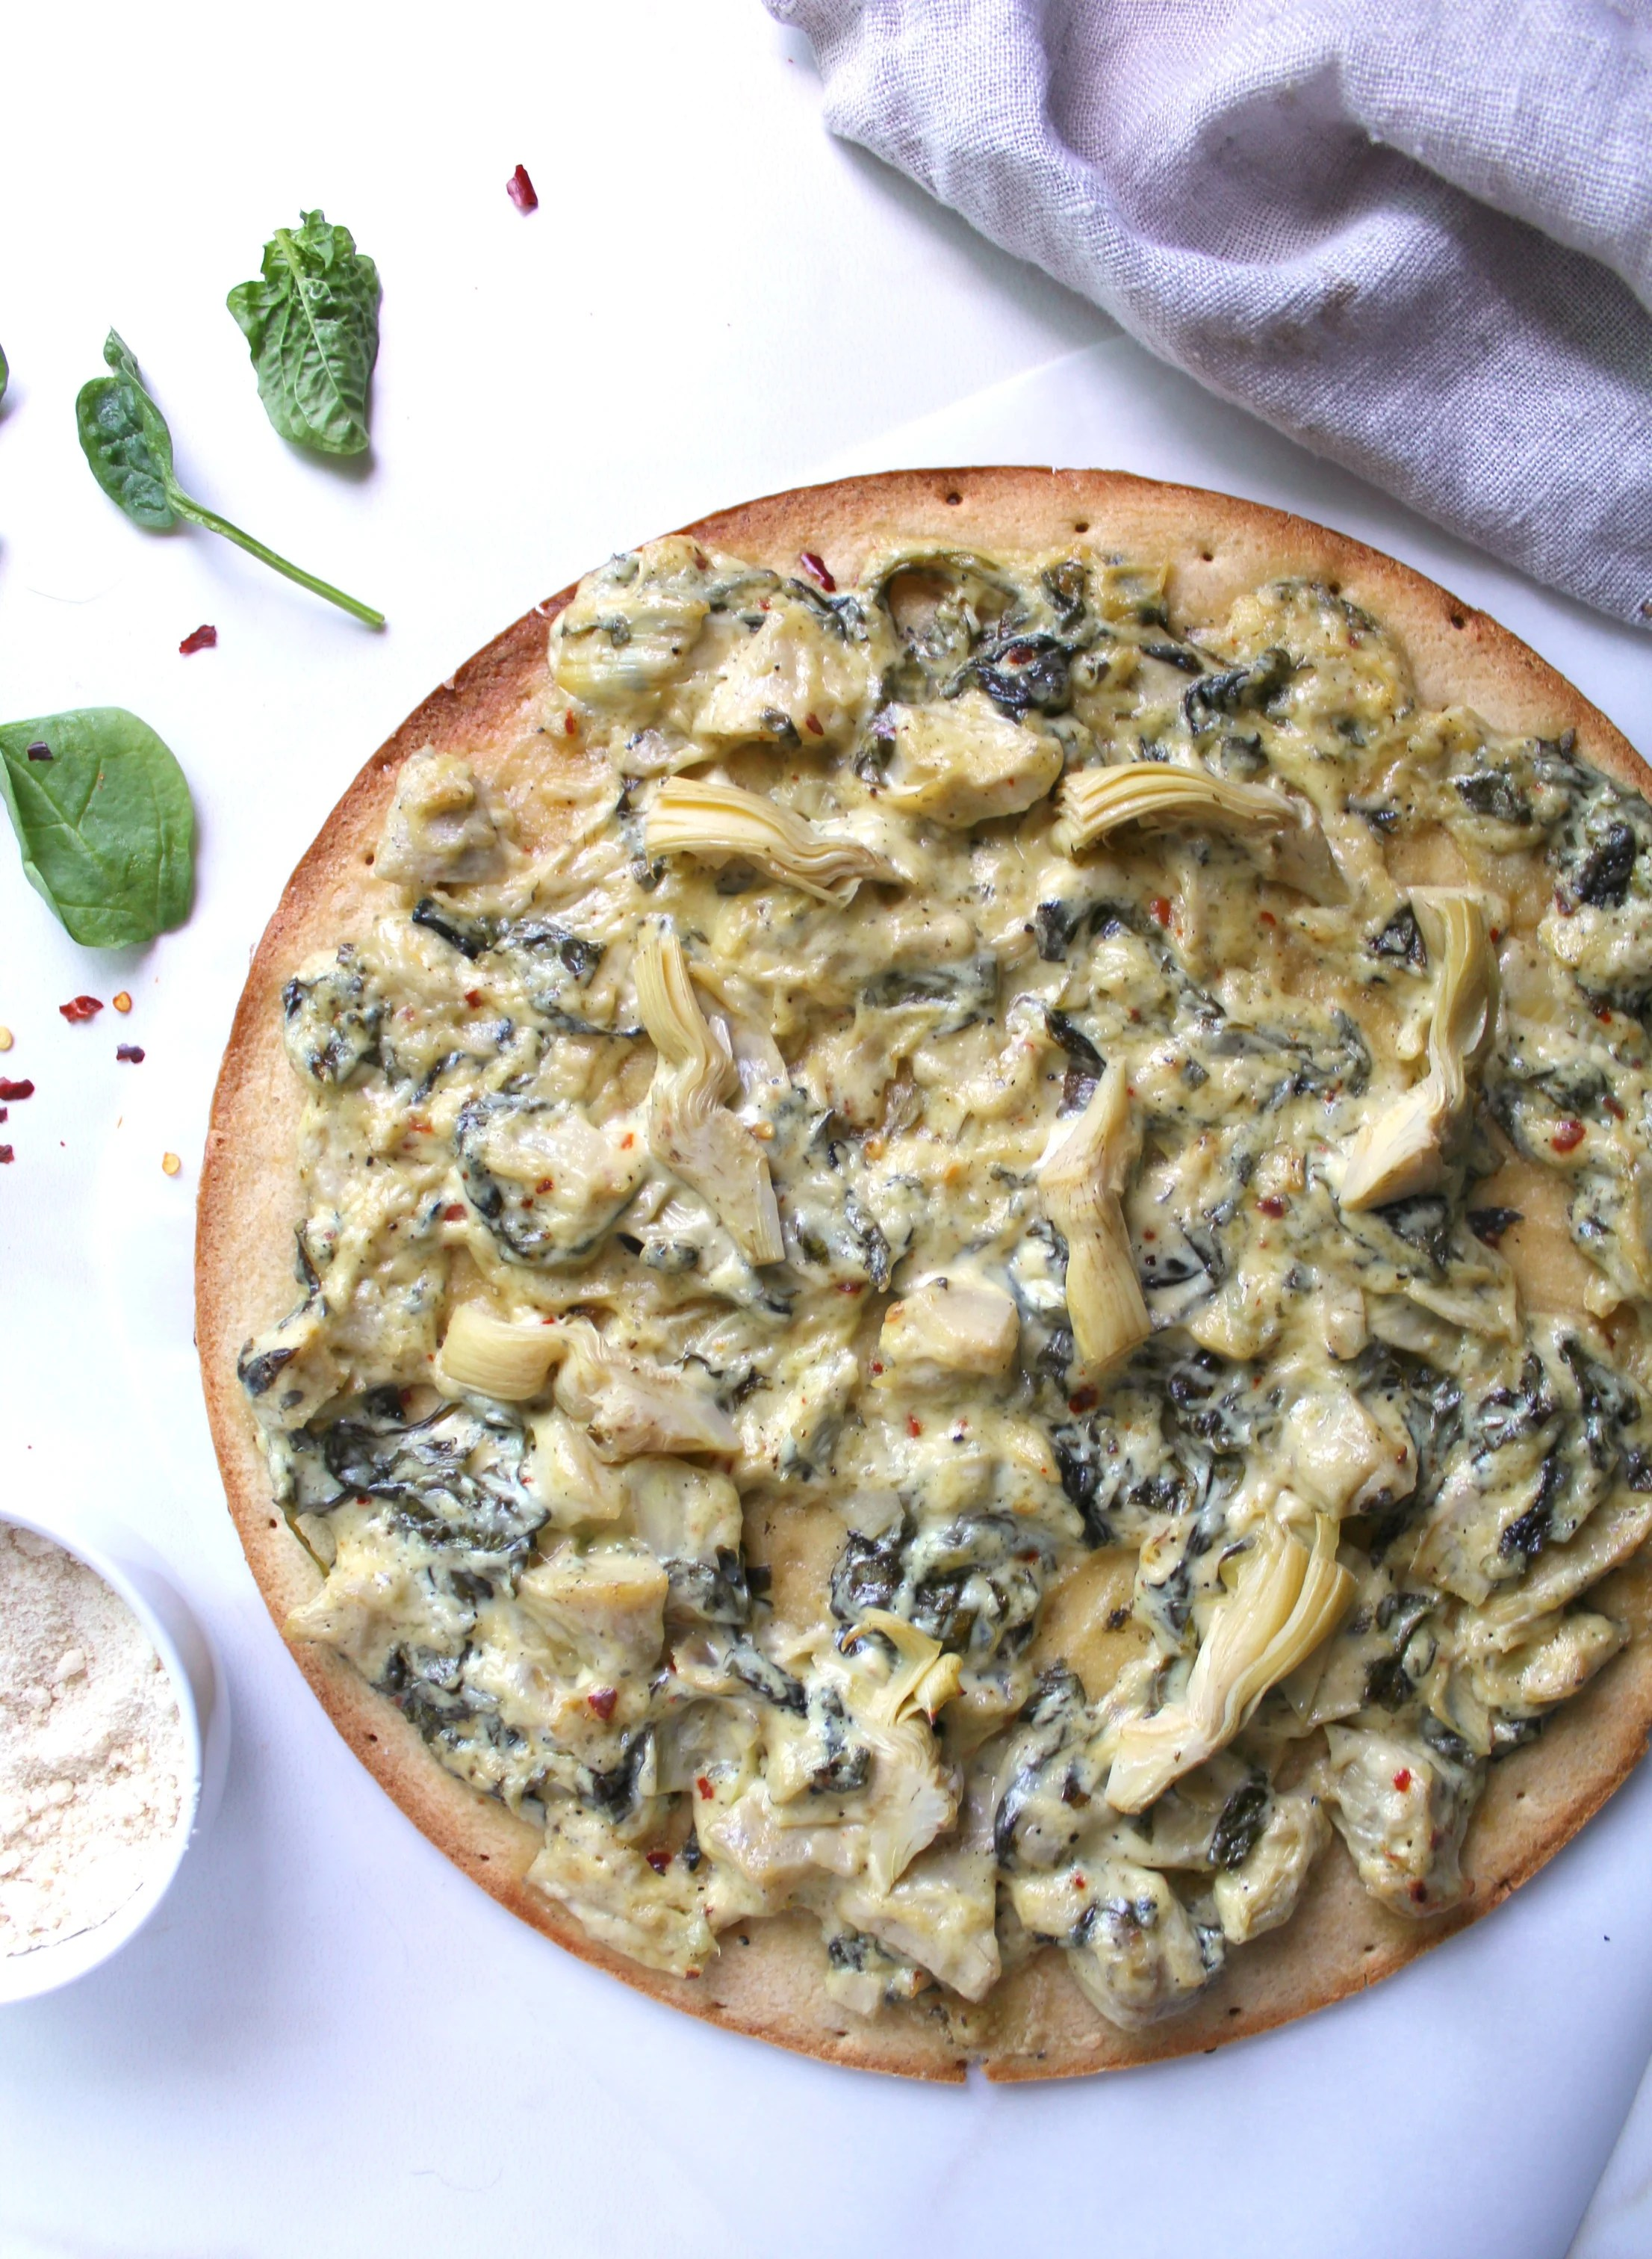 Creamy, comforting and tasty spinach artichoke dip on top of a crispy crust makes this Vegan Spinach Artichoke Pizza an instant favorite | ThisSavoryVegan.com